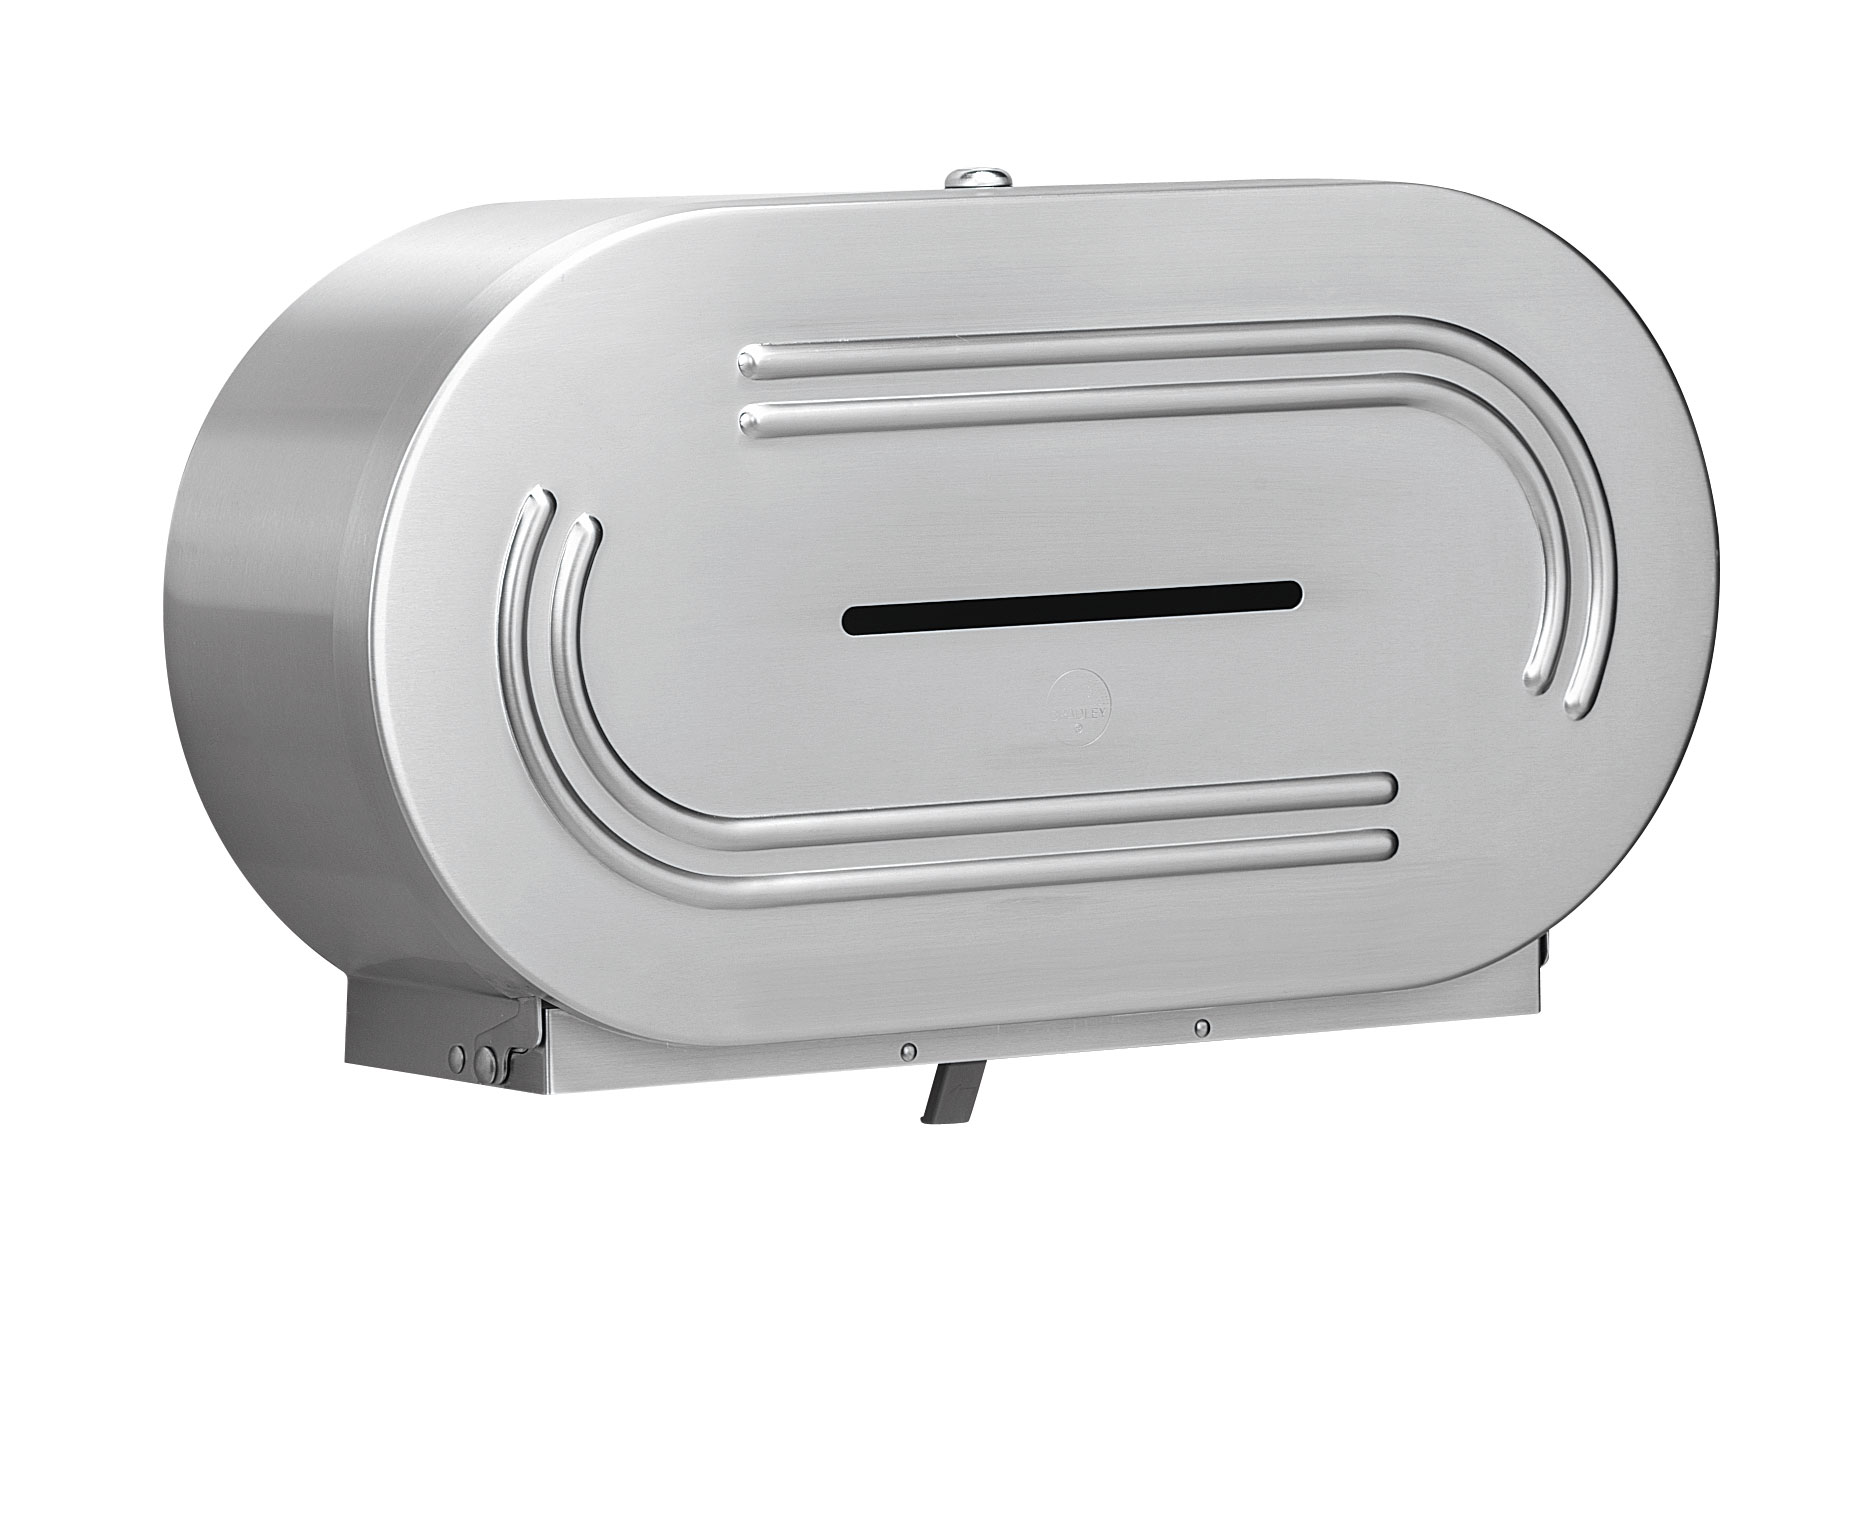 Bradley 5425 Dual Jumbo Roll Toilet Paper Dispenser